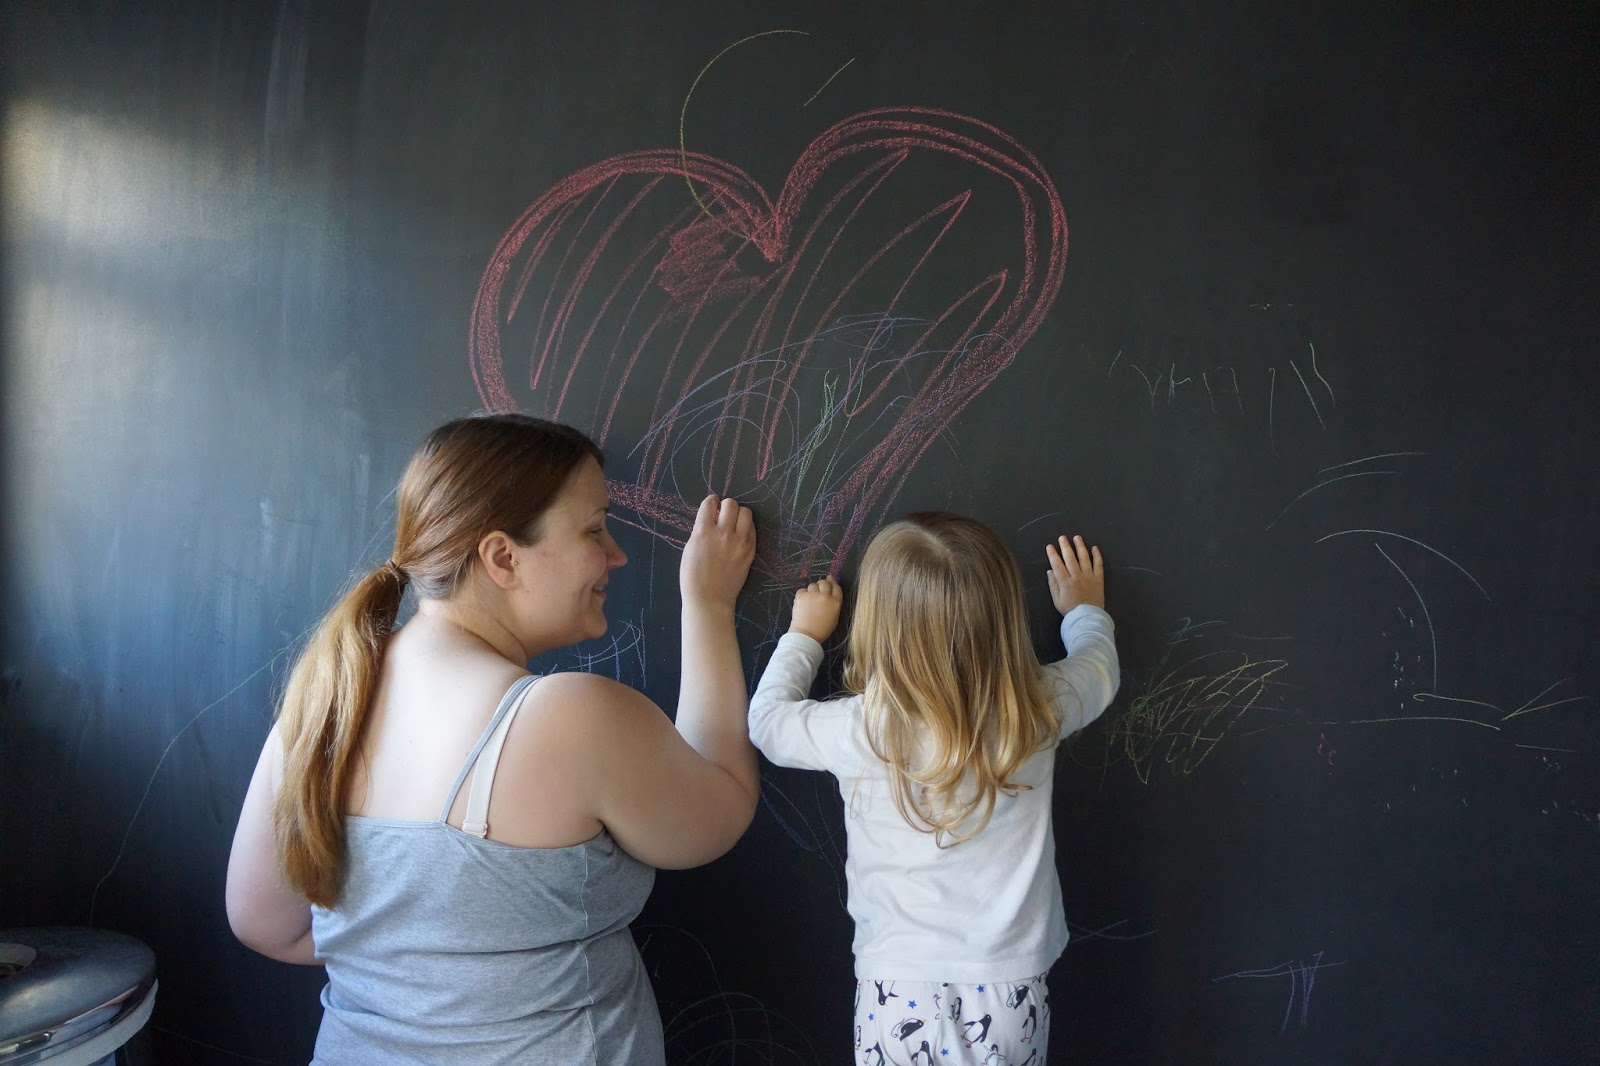 mummy and daughter drawing a heart on a blackboard